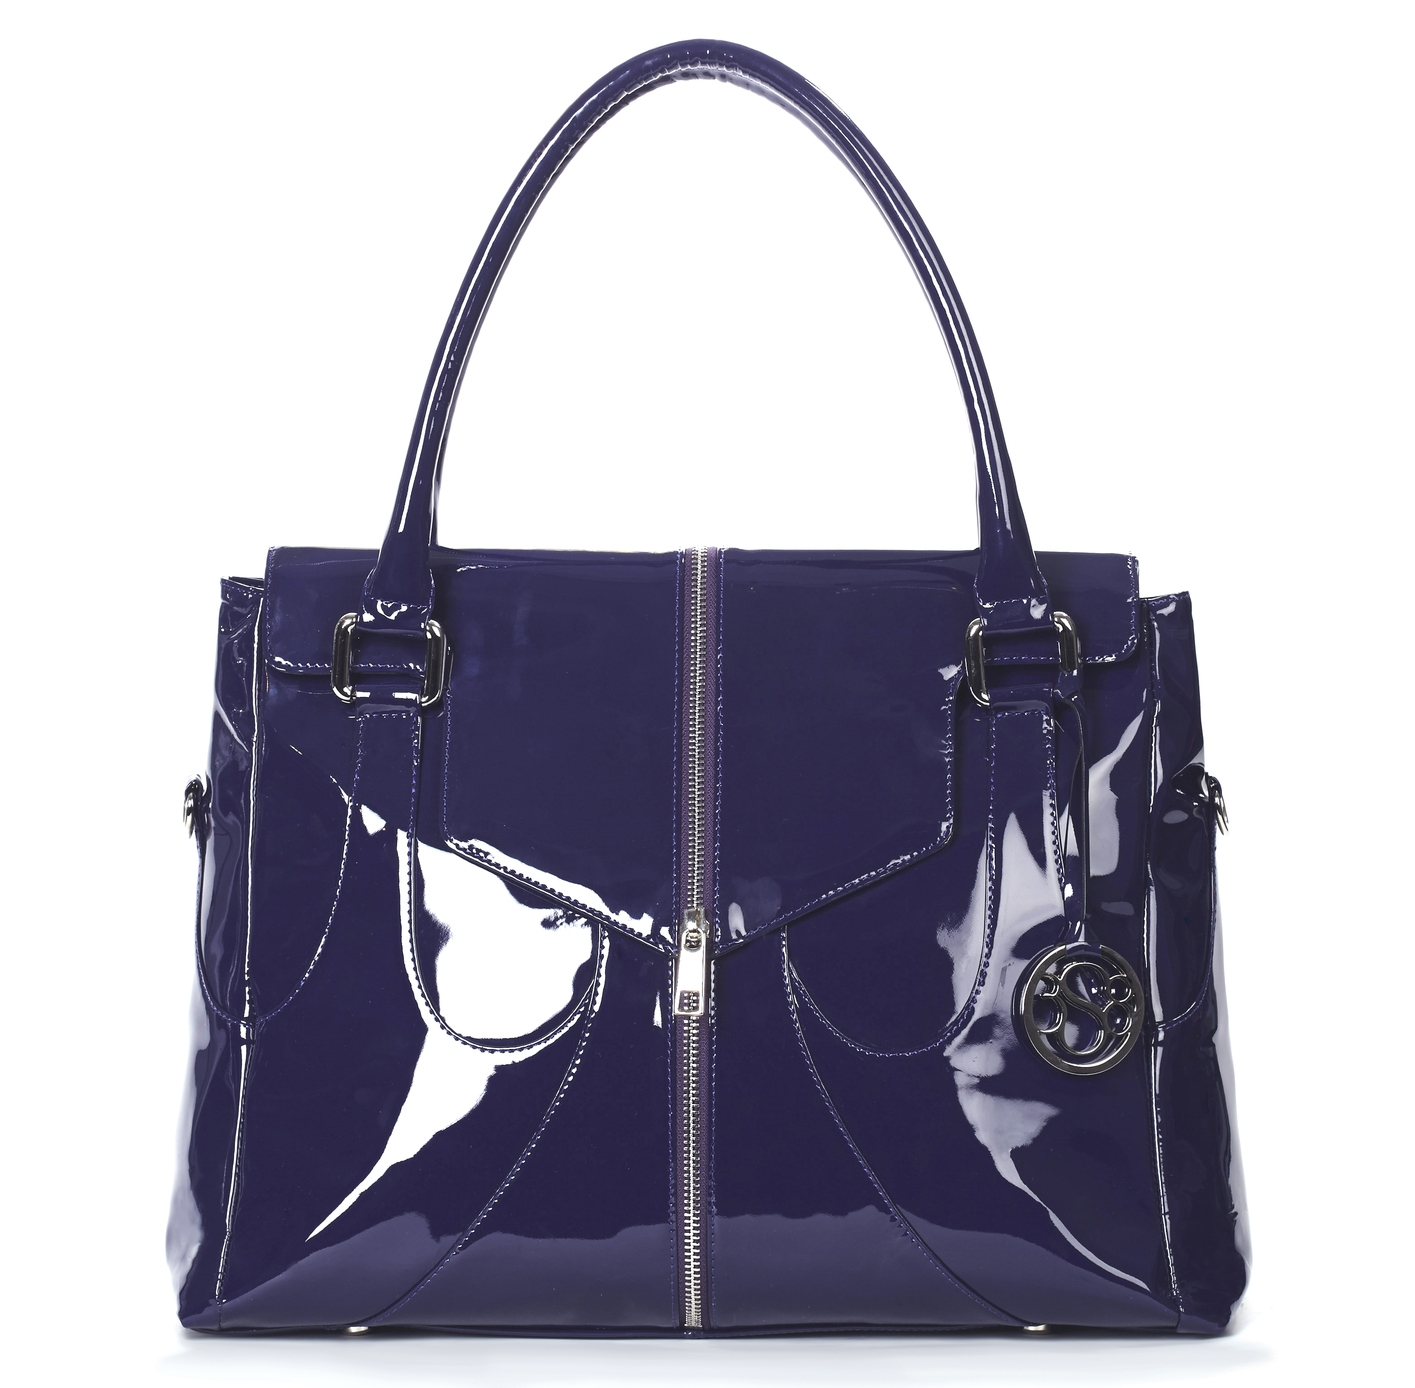 MAJESTIC MULBERRY - $645.00